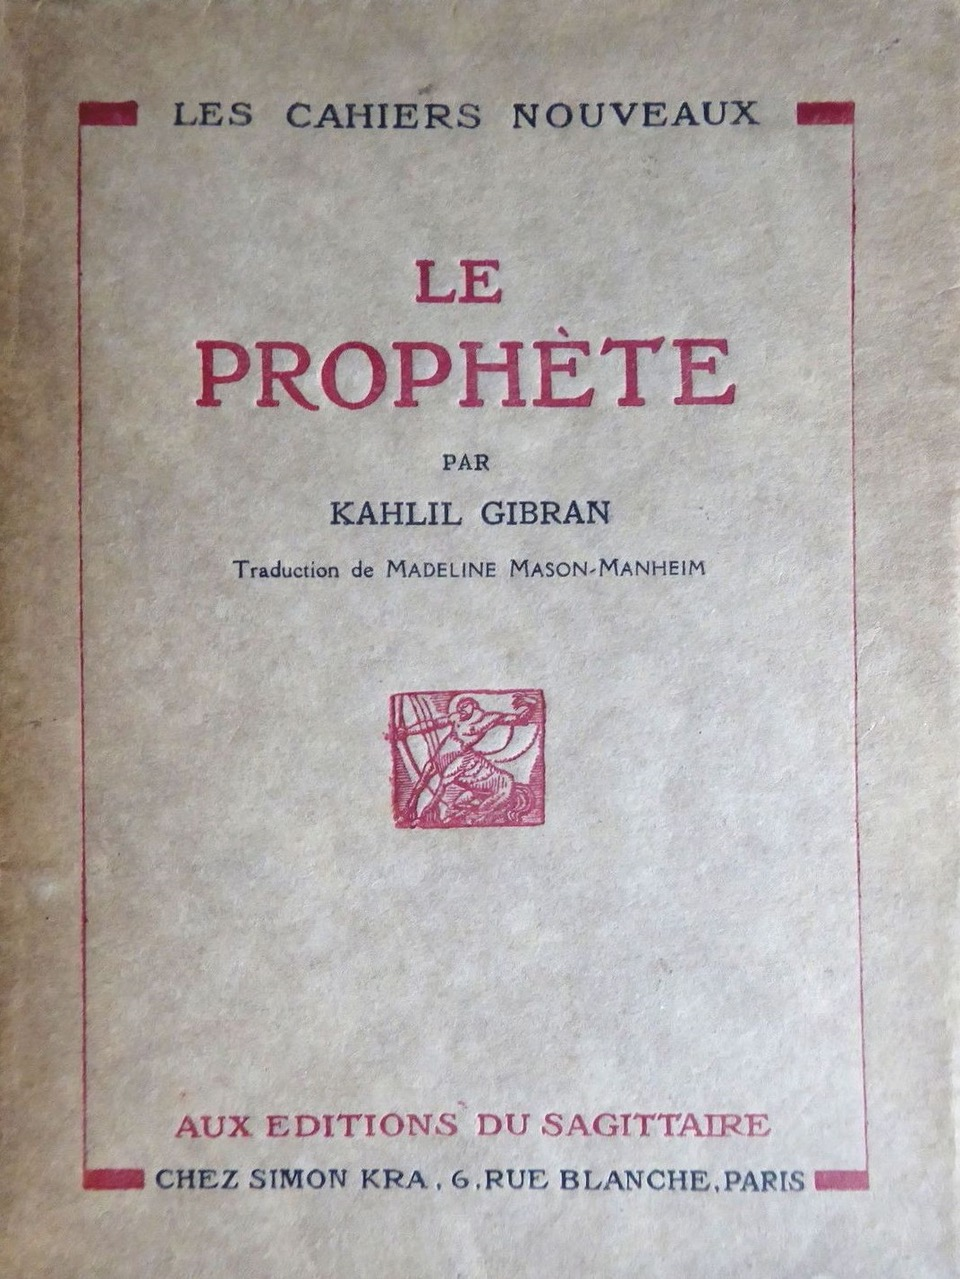 K. Gibran, Le prophète, translated into French by Madeline Mason-Manheim, Paris: Éditions du Sagittaire, 1926.